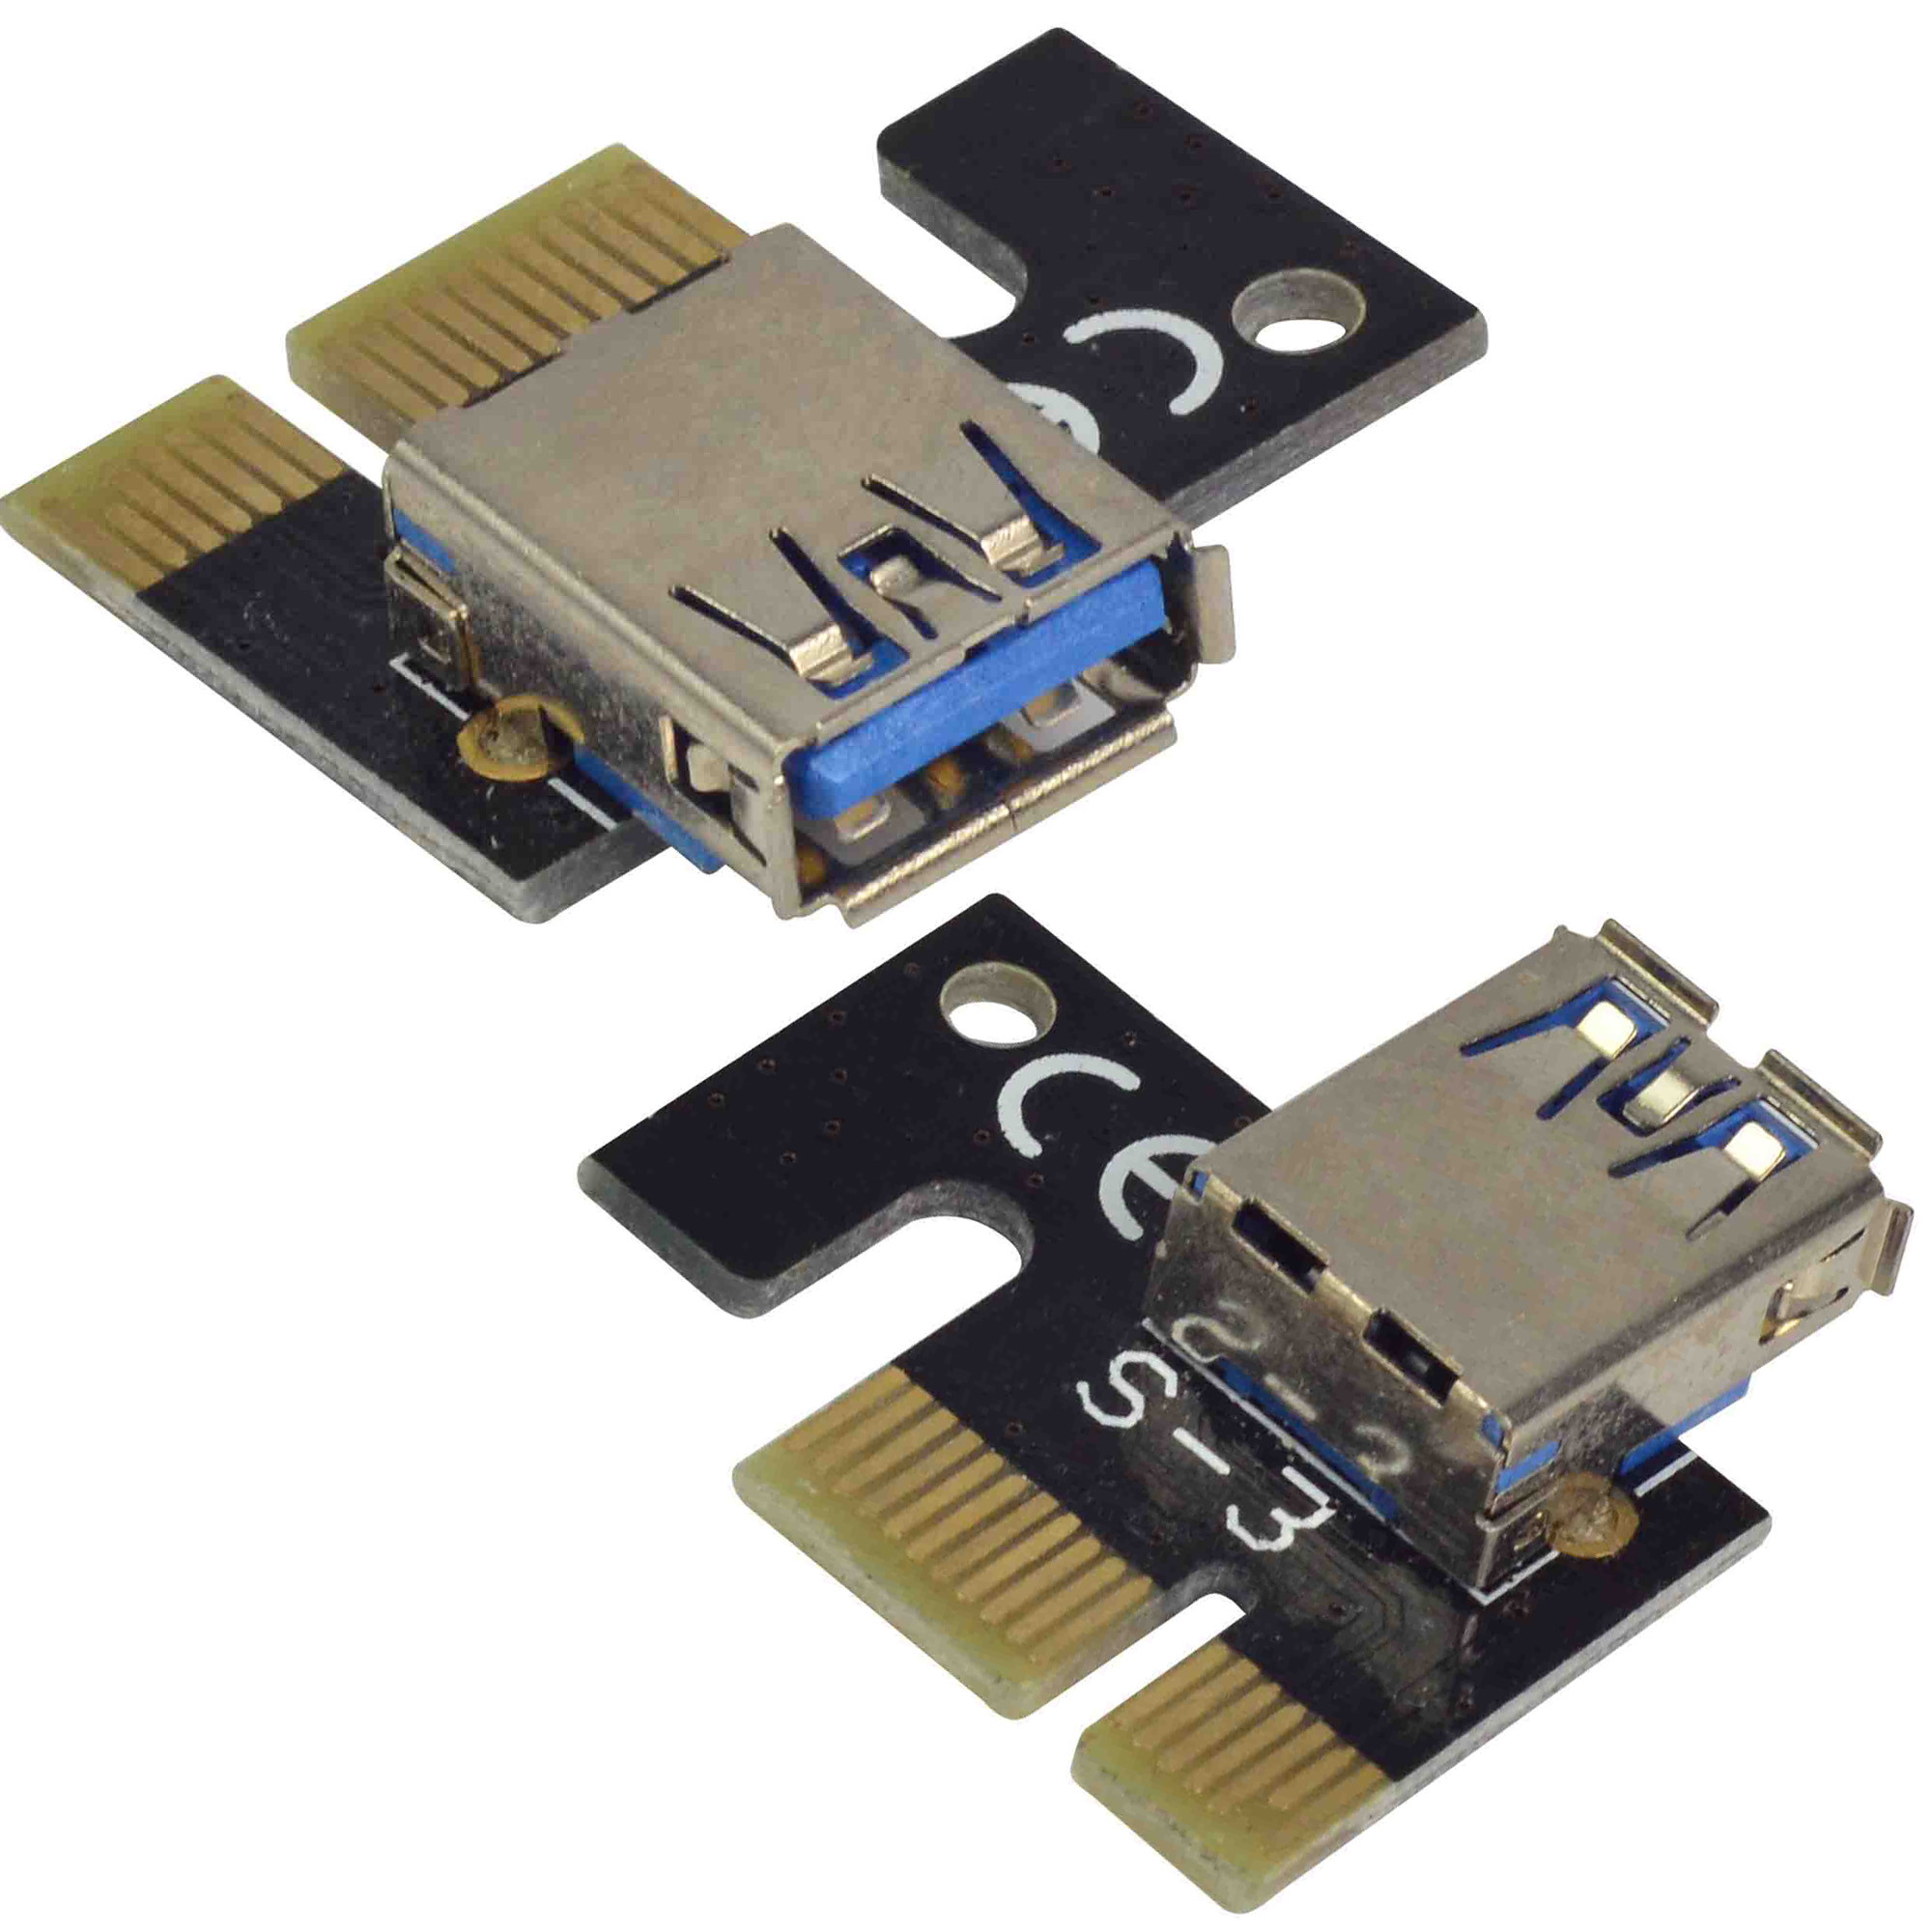 Bitcoin Mining Pci Express Forex Trading Pcie Riser Card 1x To 16x 3x X1 Slots Splitter 4jun 2017 Miners Willing Increase The Number Of Available Onpcie E